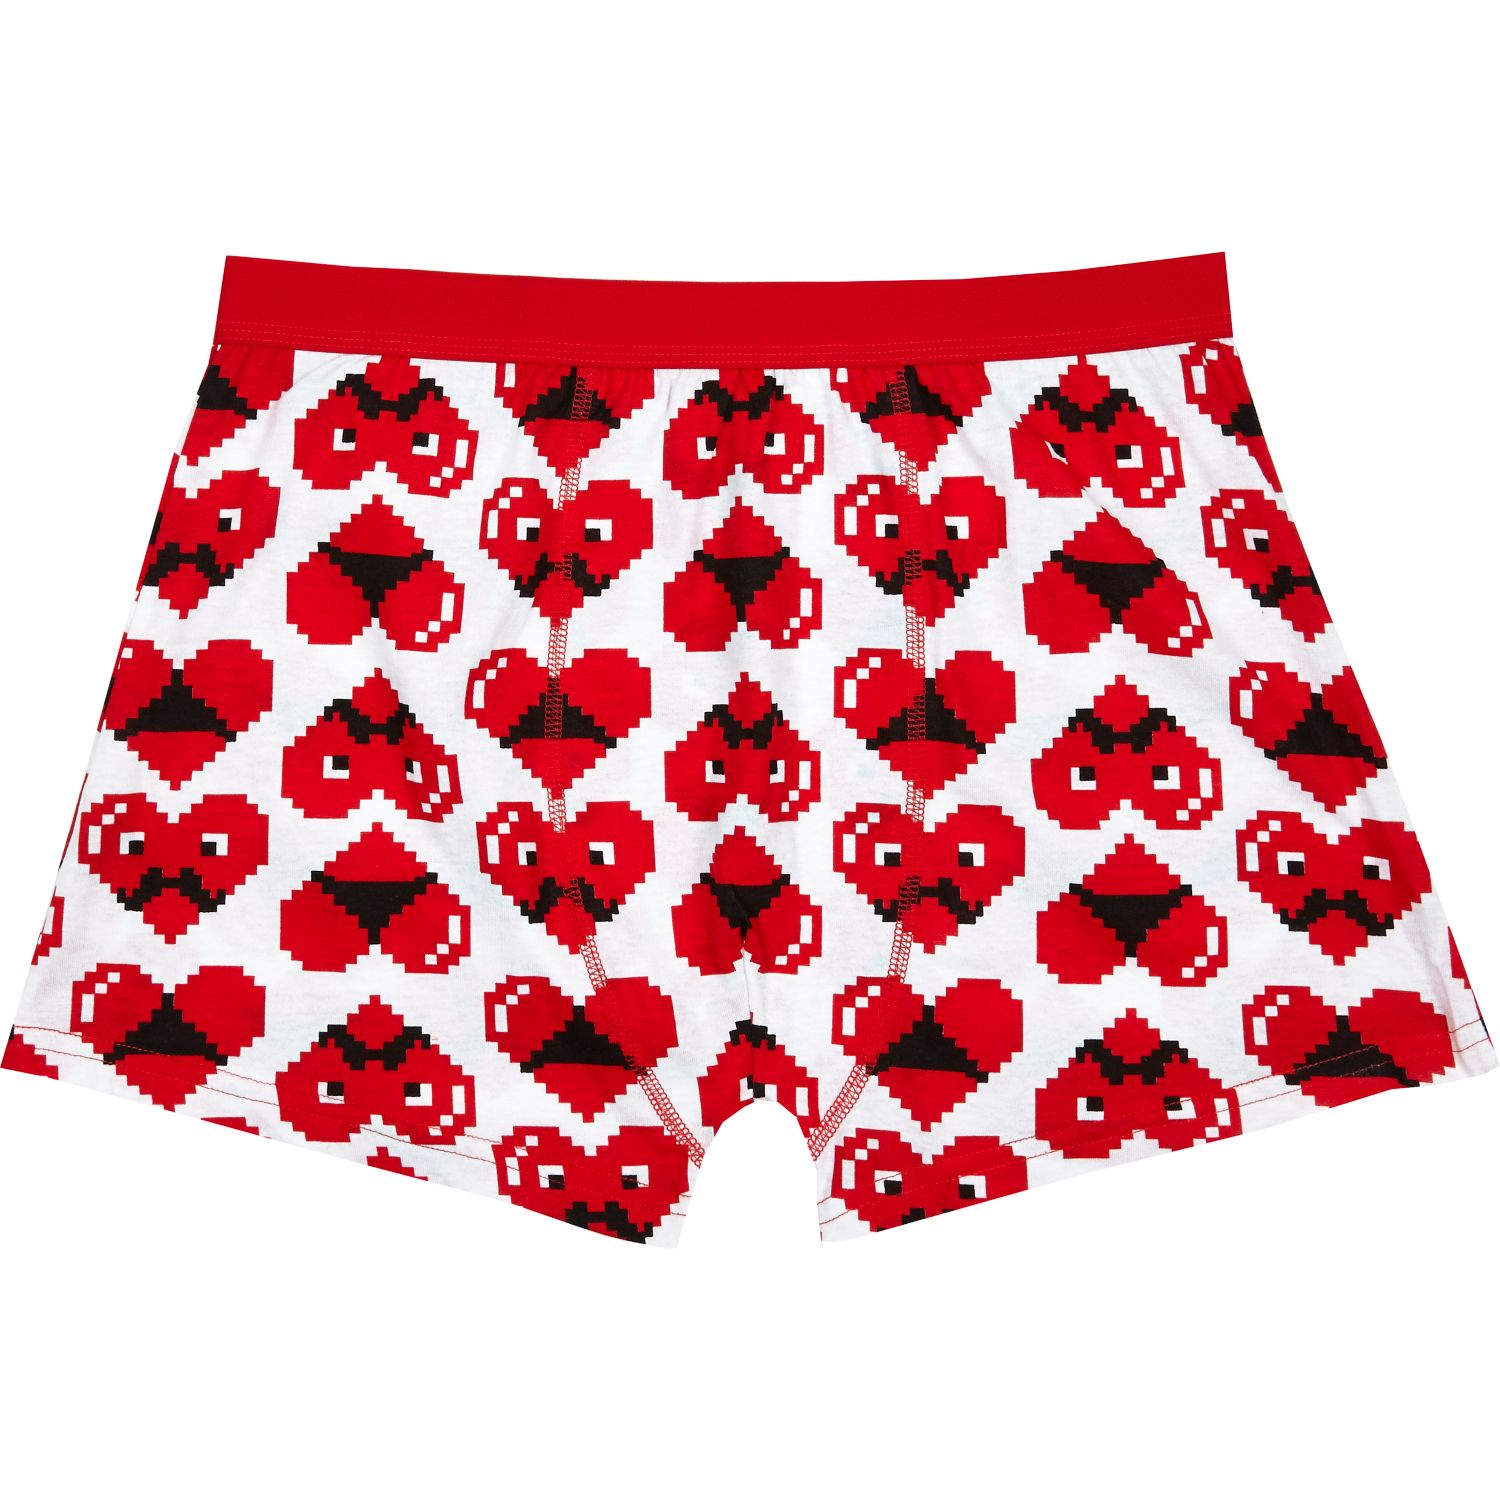 You searched for: boxers with hearts! Etsy is the home to thousands of handmade, vintage, and one-of-a-kind products and gifts related to your search. No matter what you're looking for or where you are in the world, our global marketplace of sellers can help you find unique and affordable options. Let's get started!